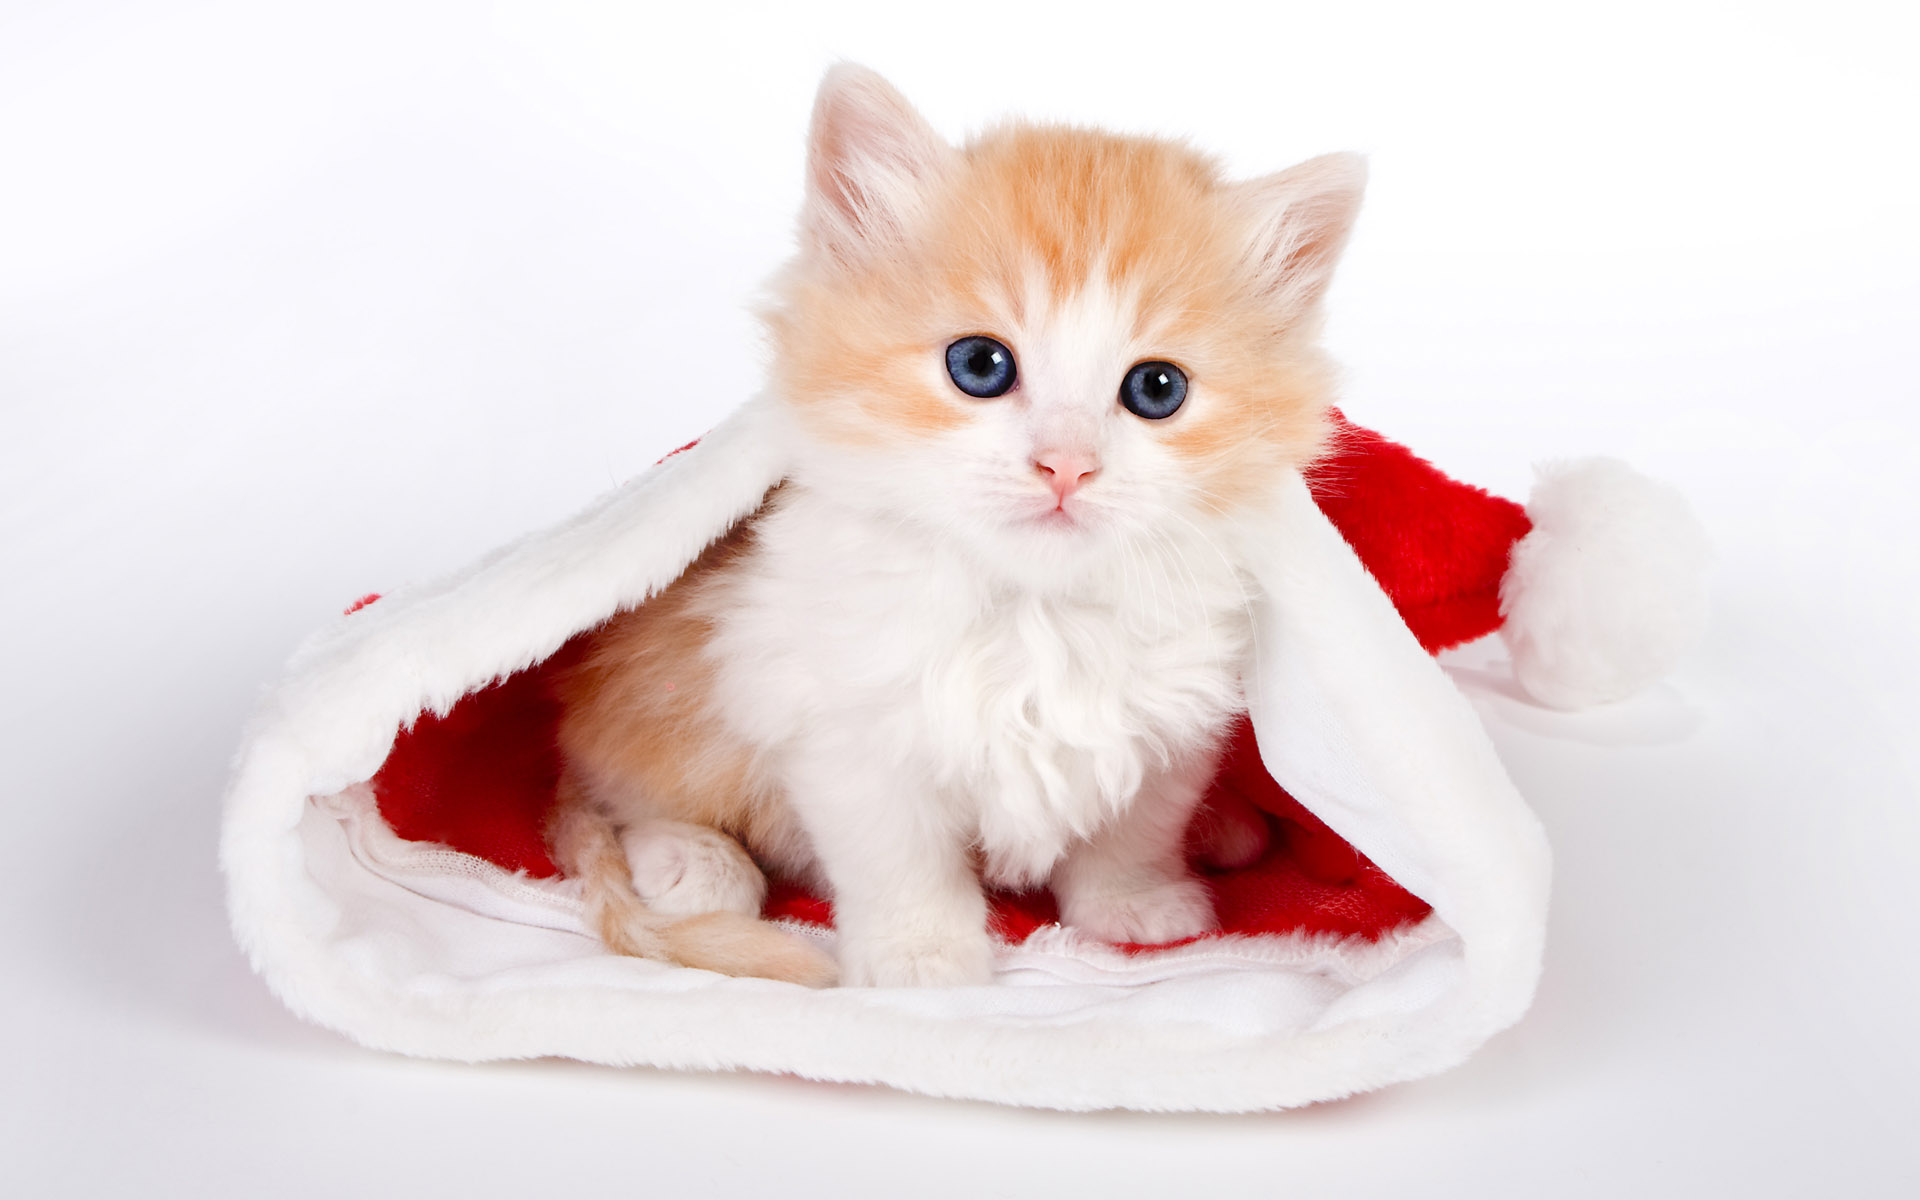 cute cat wallpapers cute cat desktop wallpaper cat desktop 1920x1200